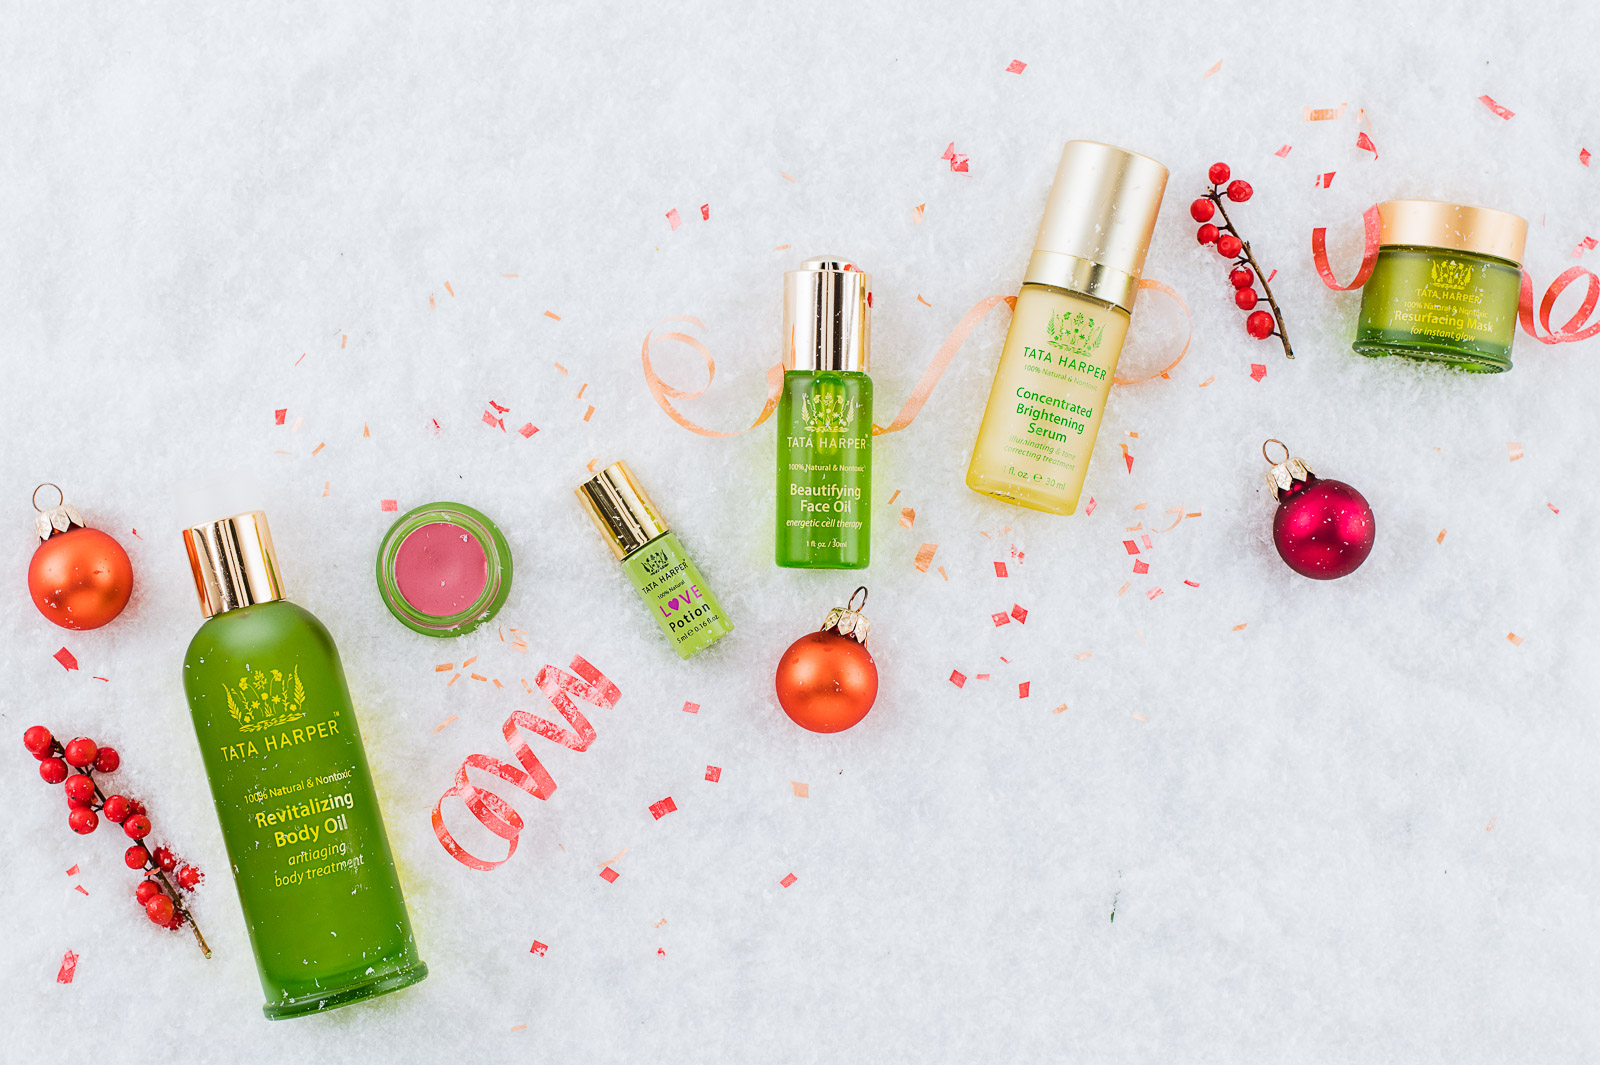 Tata Harper Revitalizing Body Oil, Love Potion, Beautifying Face Oil, Concentrated Brightening Serum and Revitalizing Mask with ornaments, confetti and snow. Shot at Reciprocity Studio in Burlington, Vermont for Tata Harper Skin Care.